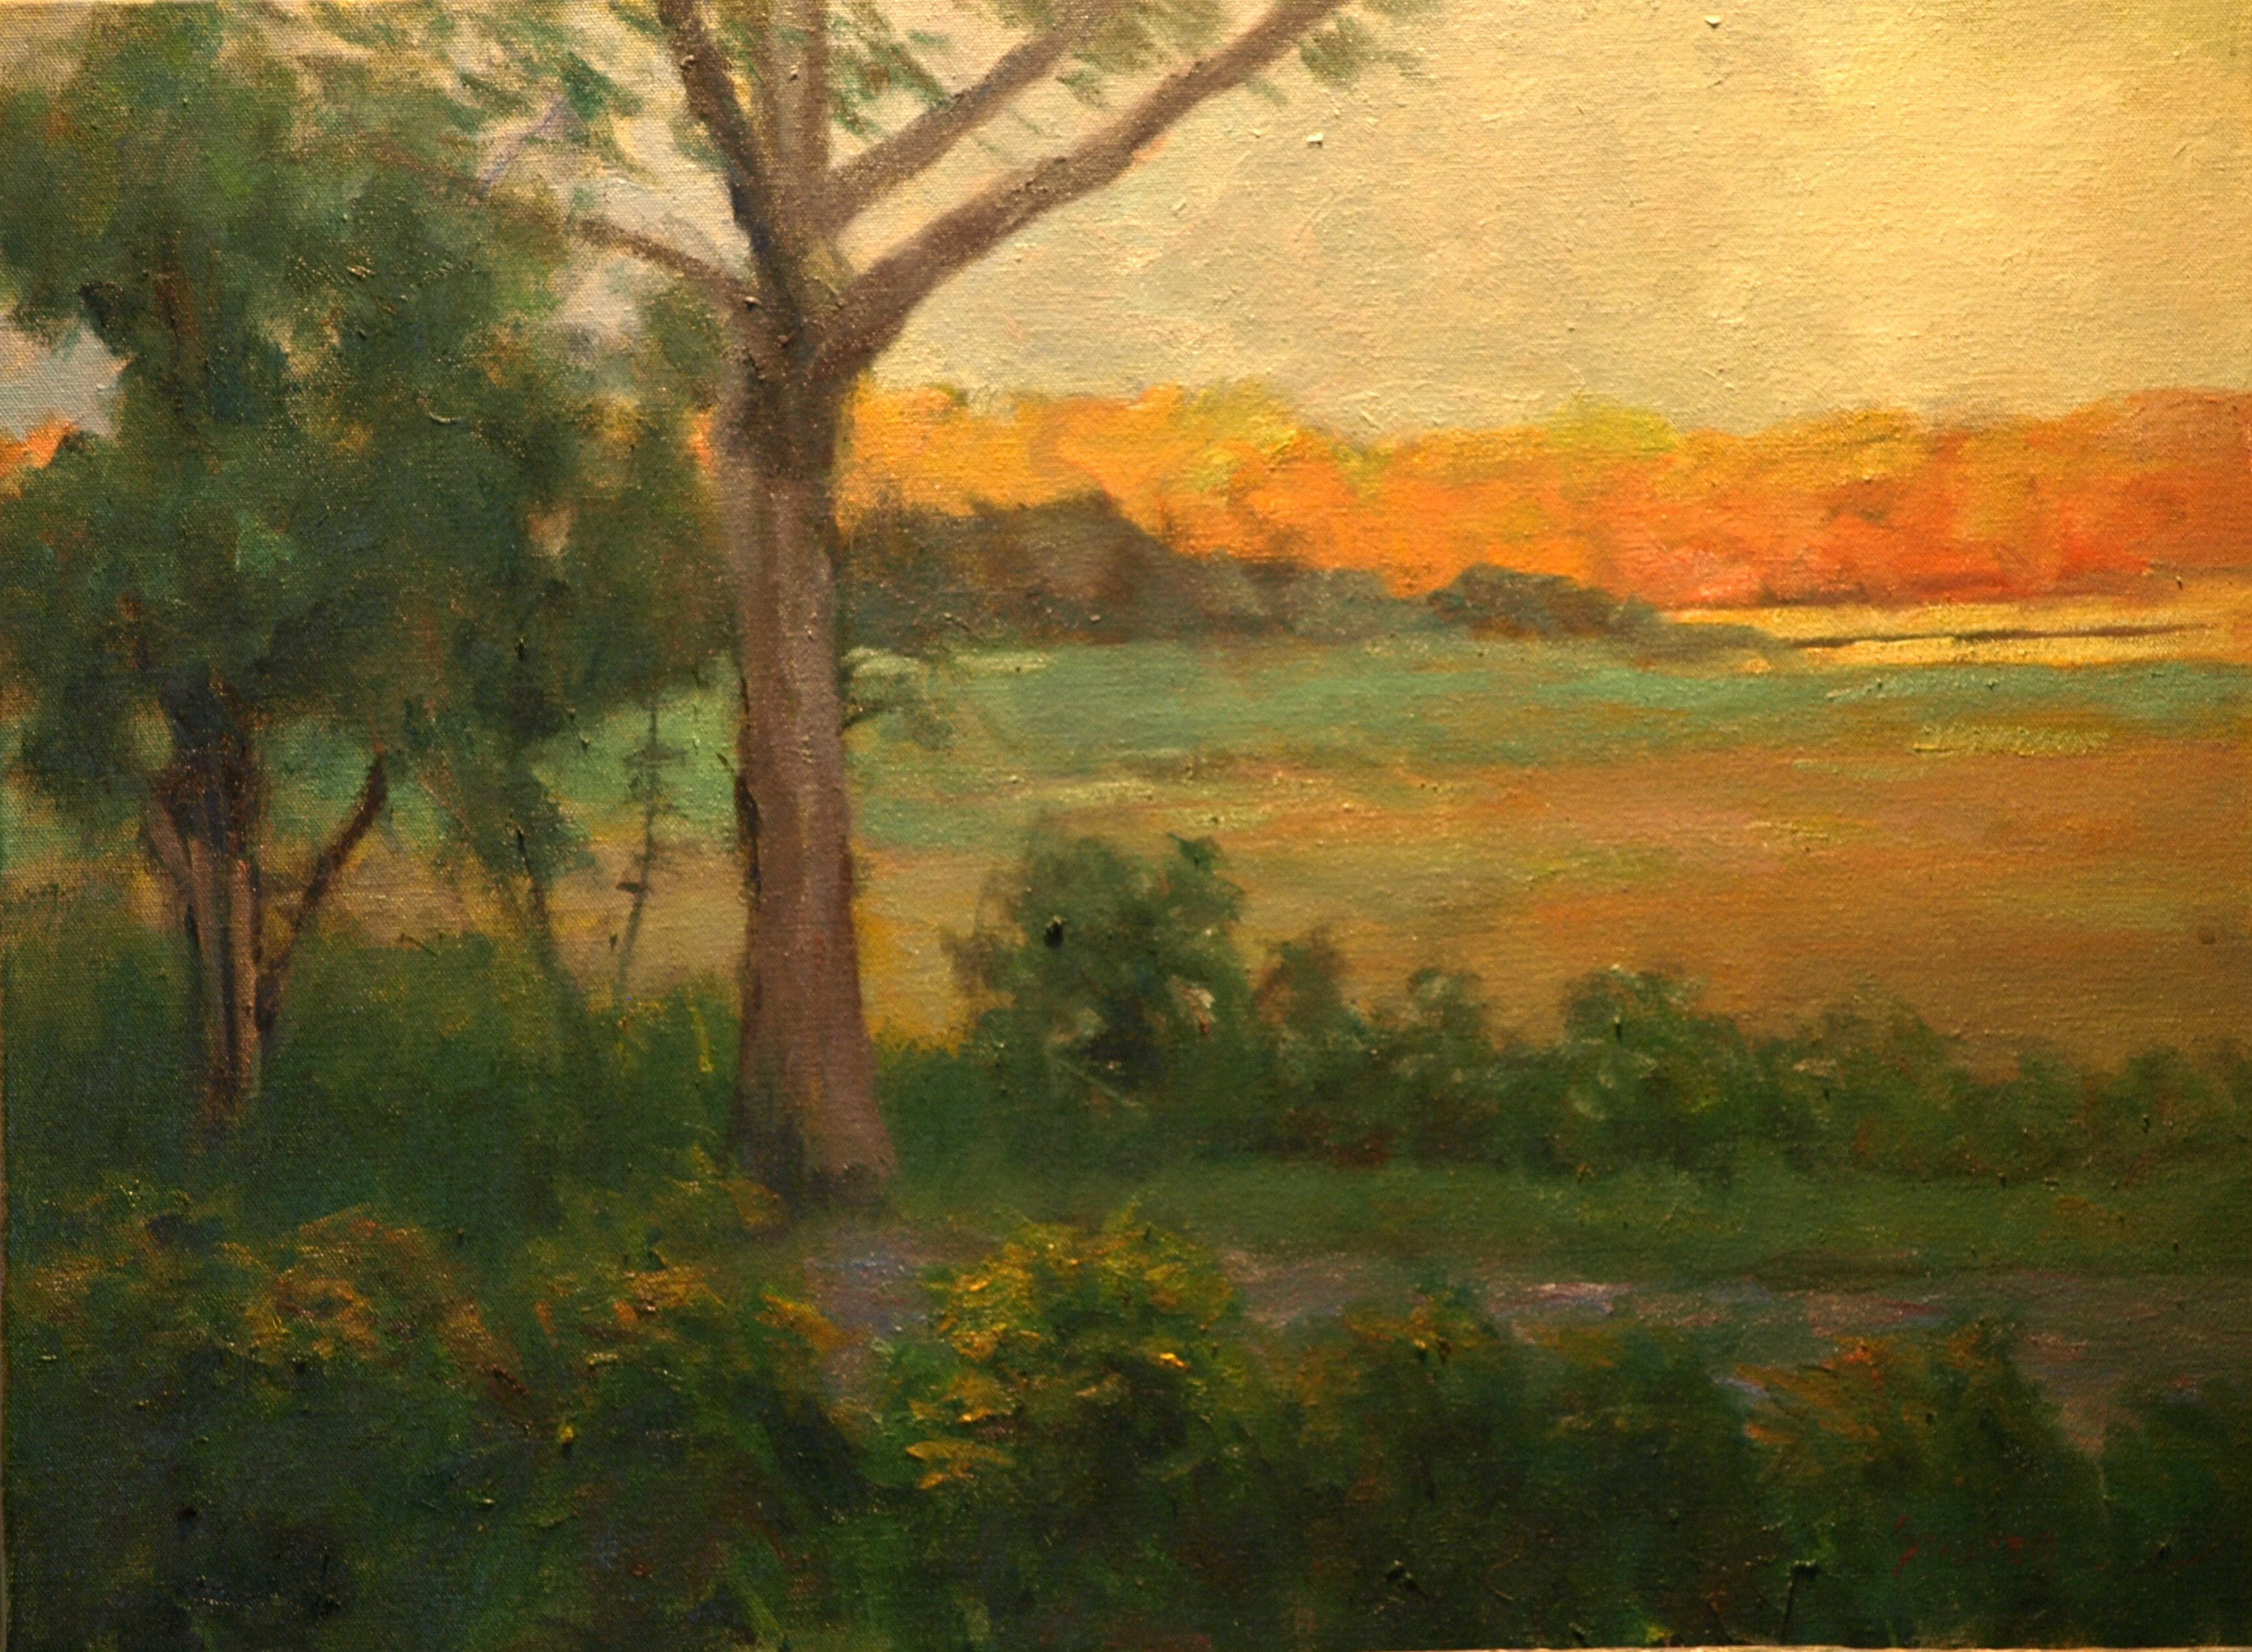 Autumn Sunset over the Marshes, Oil on Canvas, 18 x 24 Inches, by Richard Stalter, $650